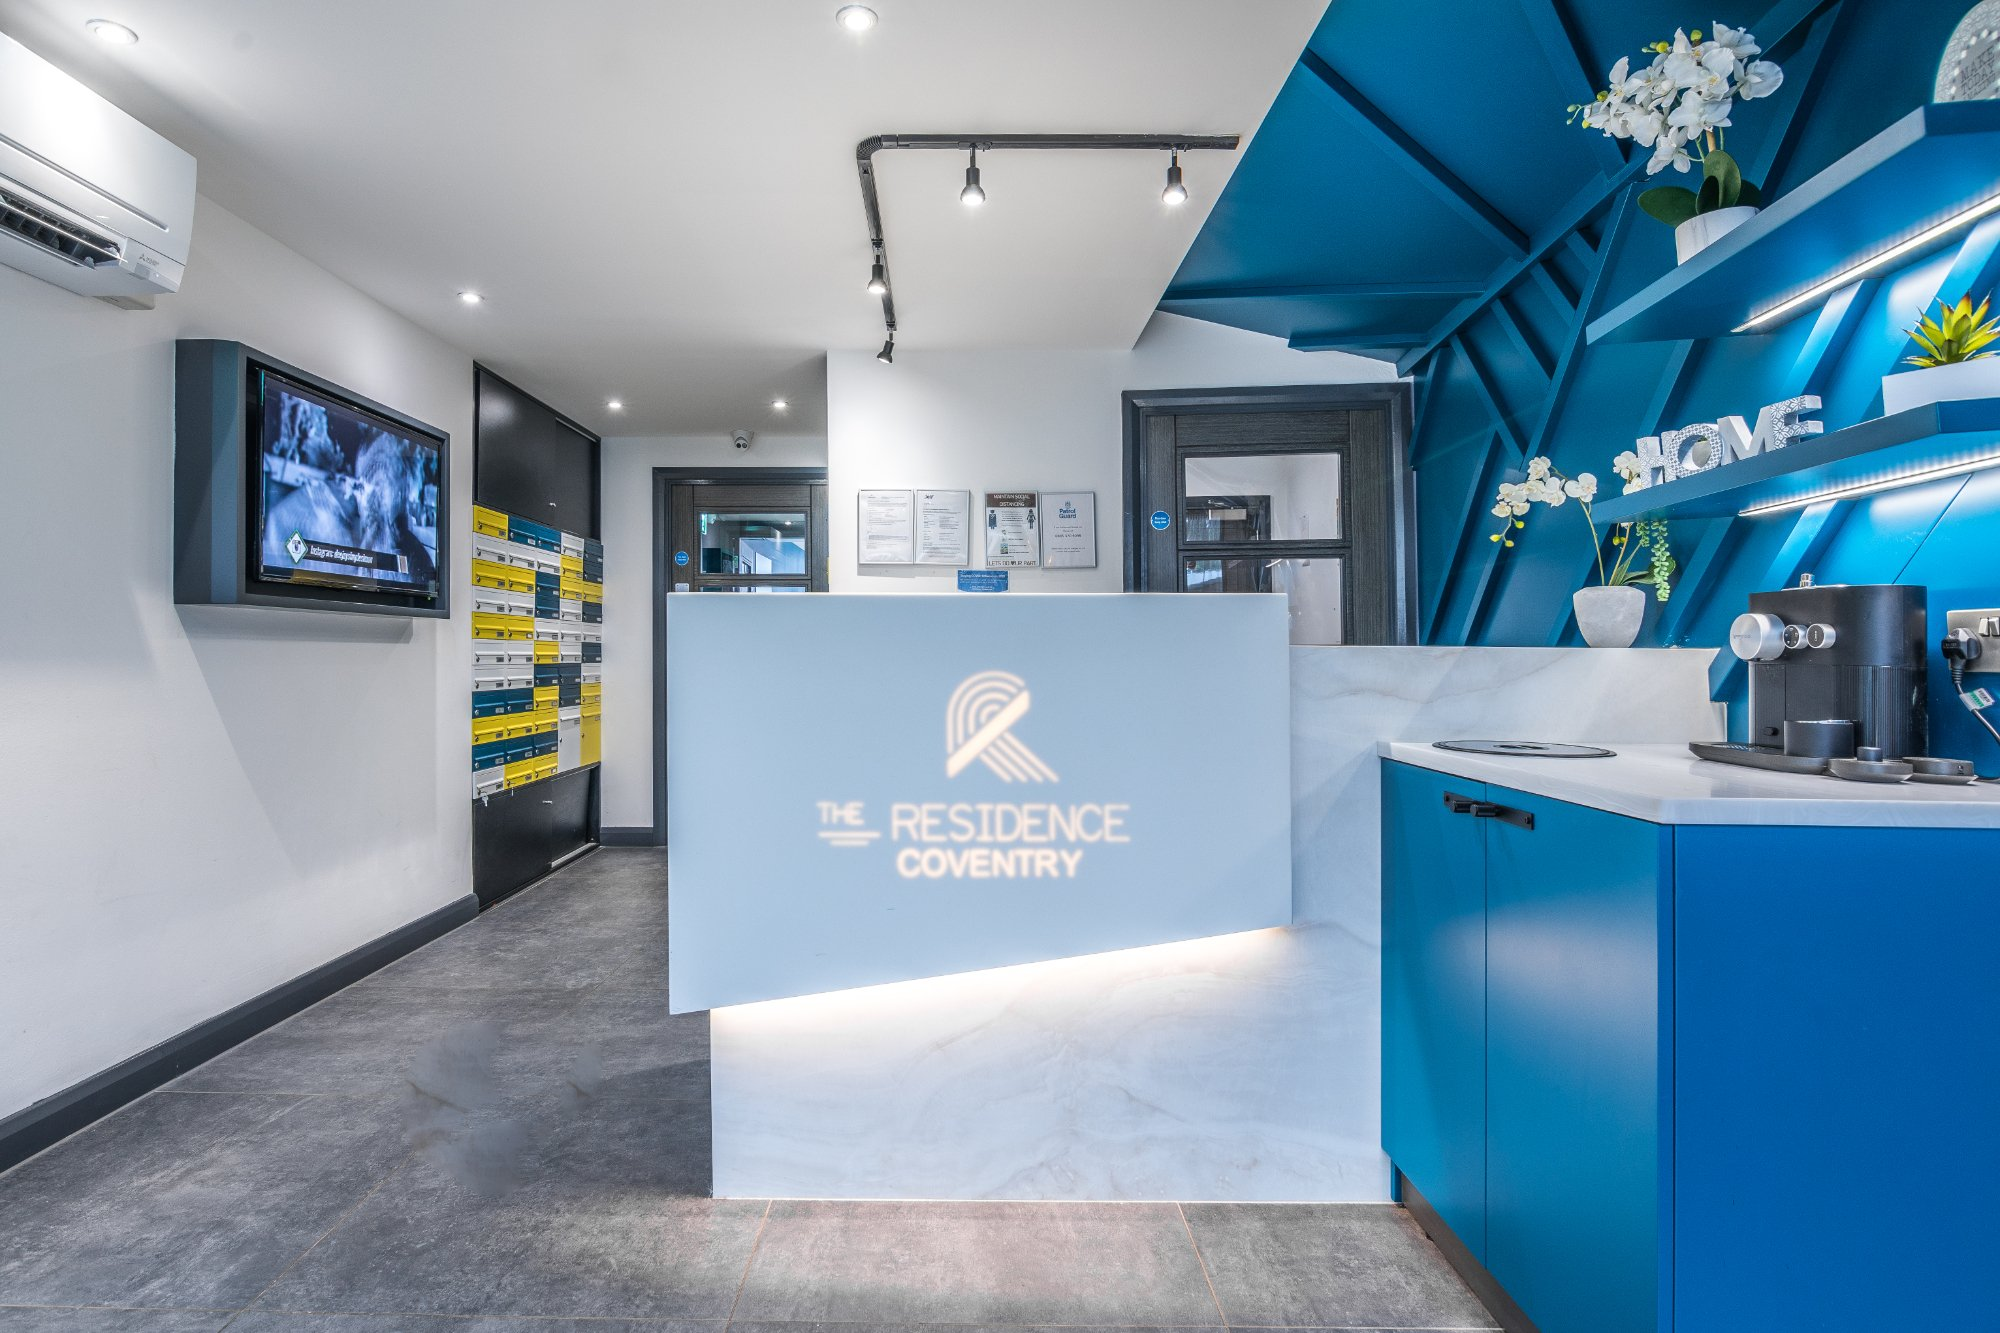 The Residence student accommodation coventry reception